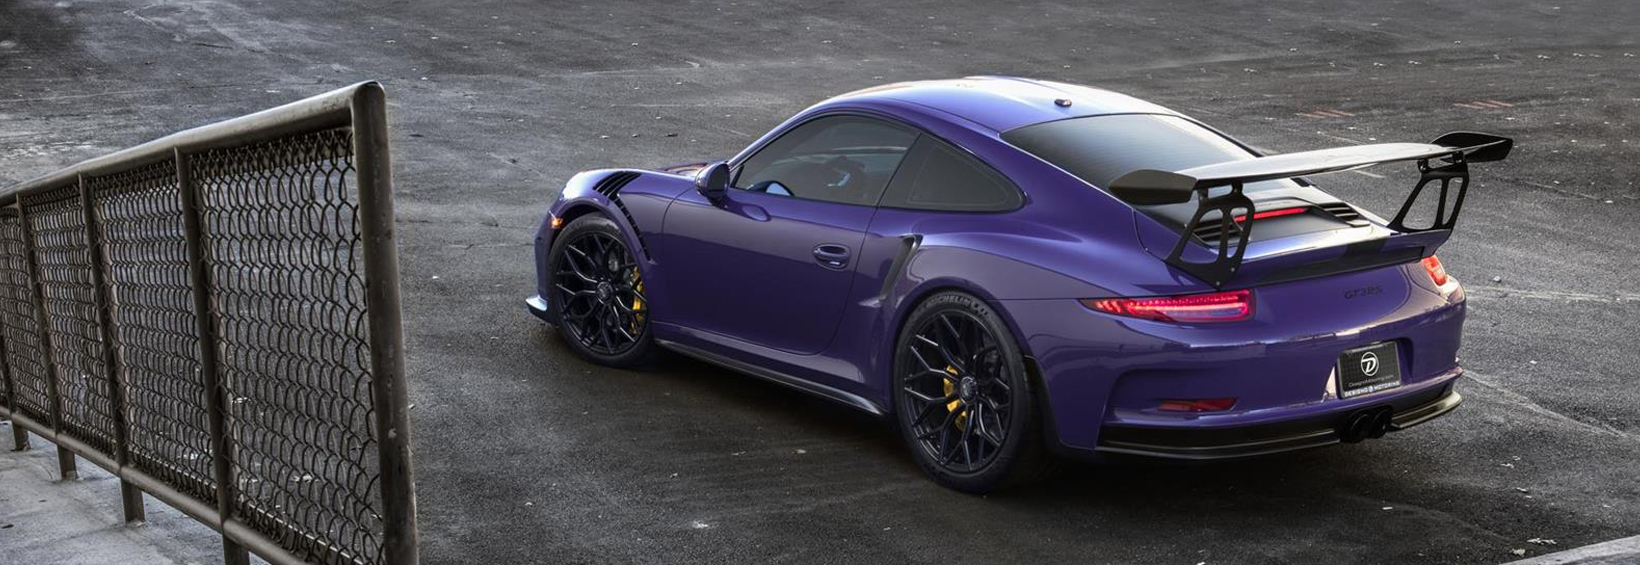 gt3rs-s17-01